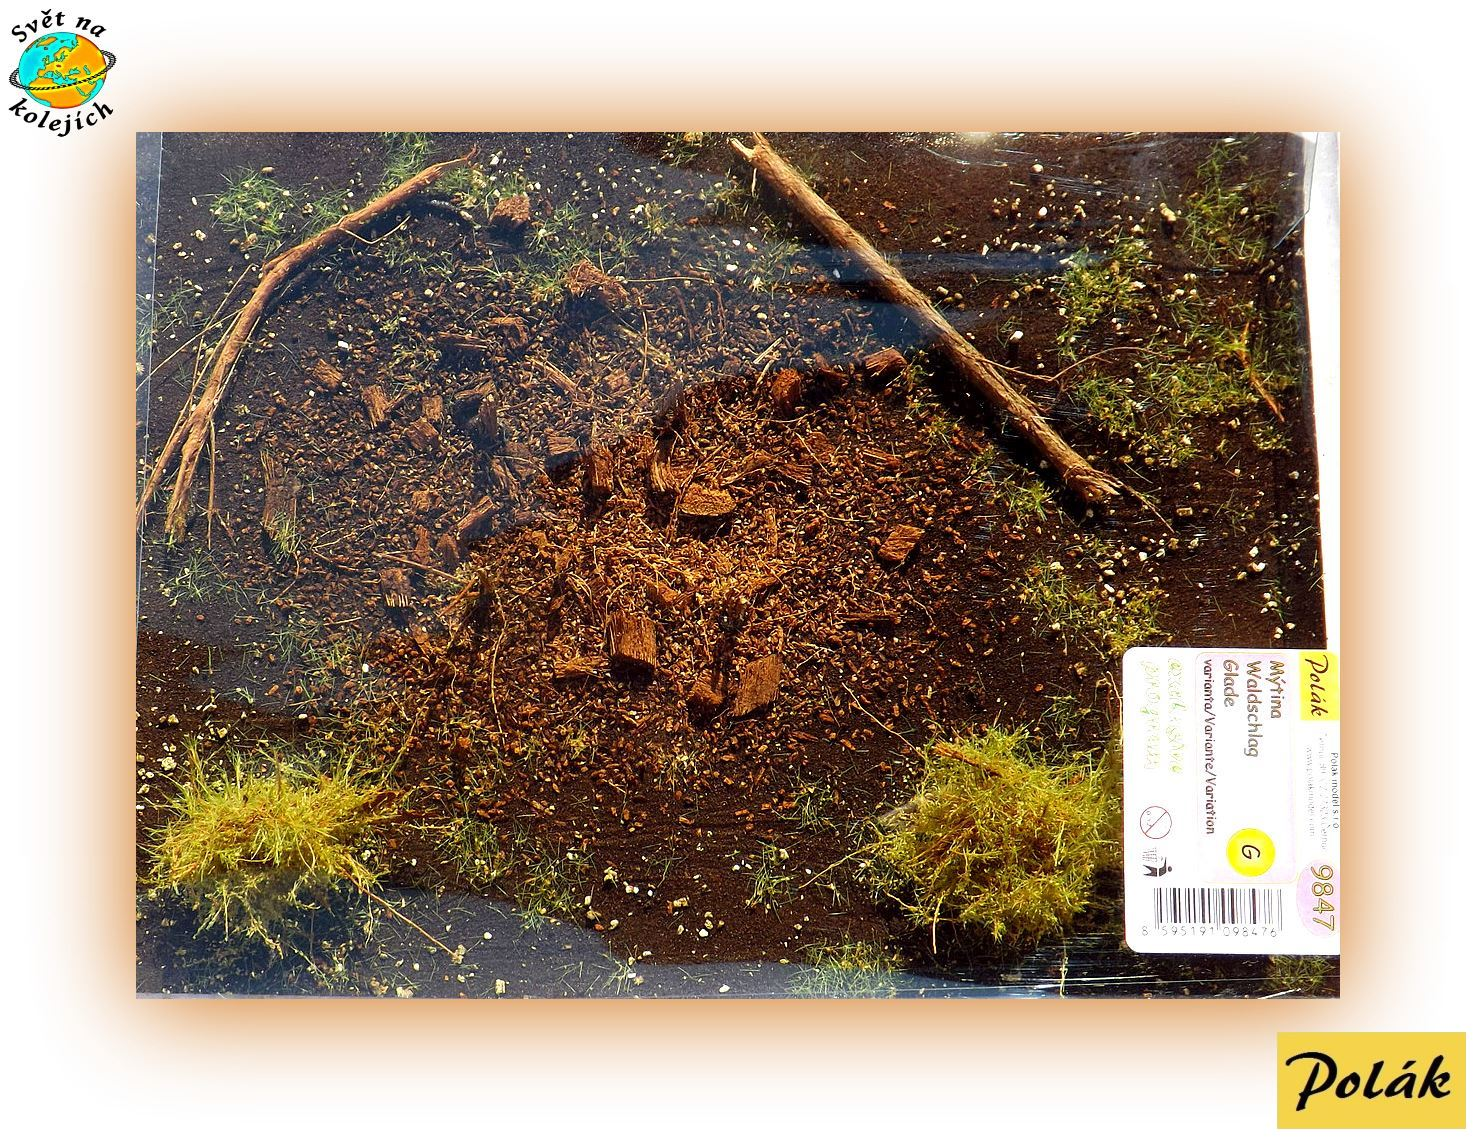 "POLÁK 9847 - FOLIAŽ "" EXCLUSIVE "" / PASEKA"